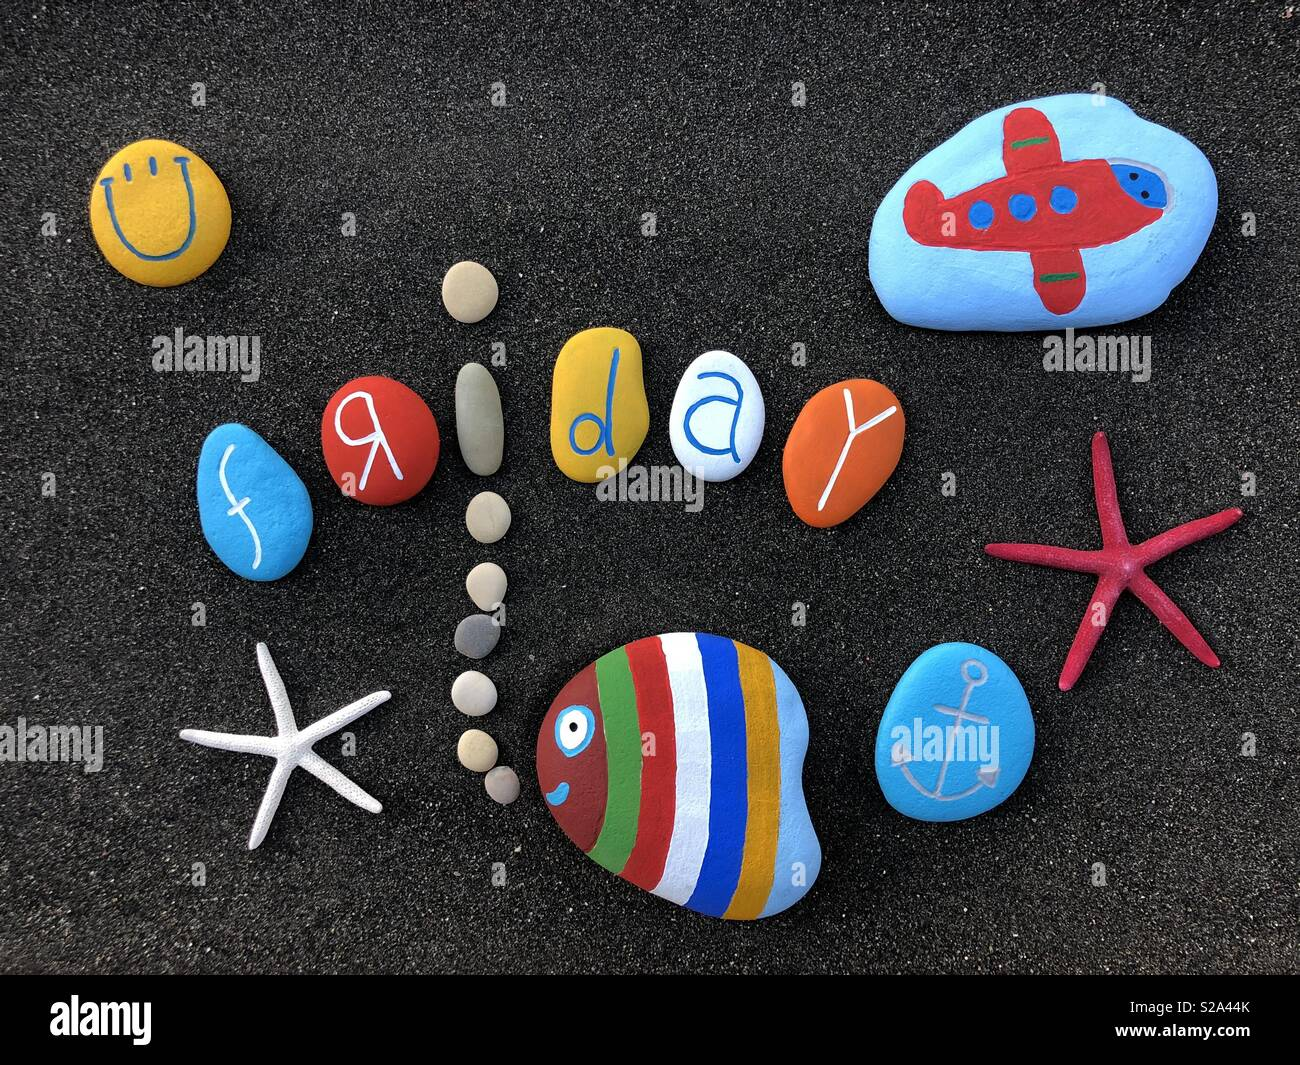 Friday with funny stones design - Stock Image